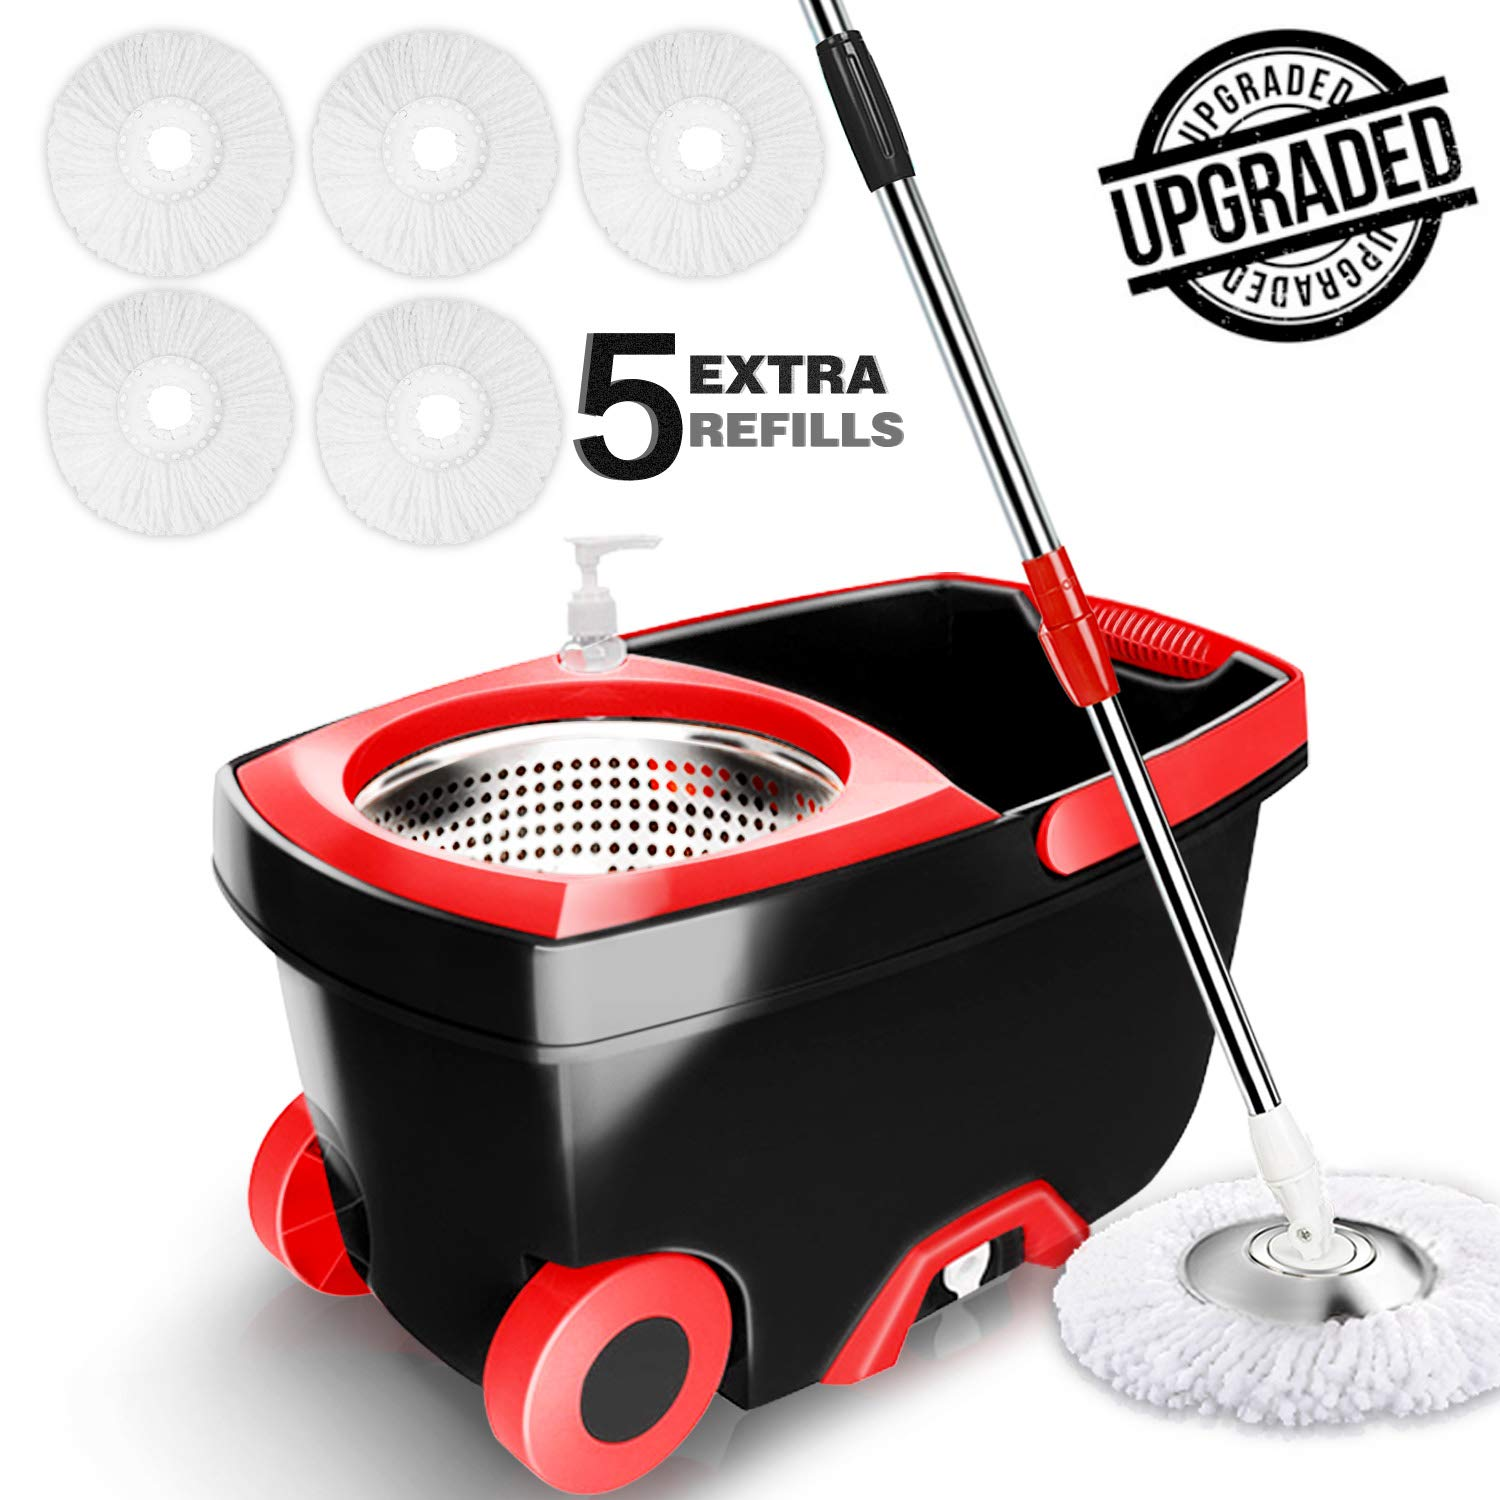 Spin Mop Bucket System - Tsmine Easy Wringer Microfiber Spinning Mop with 61 Inch Extended Handle, 2x Wheels, Stainless Steel Drainage Basket, 5 Extra Microfiber Head Refills for Home Floor Cleaning